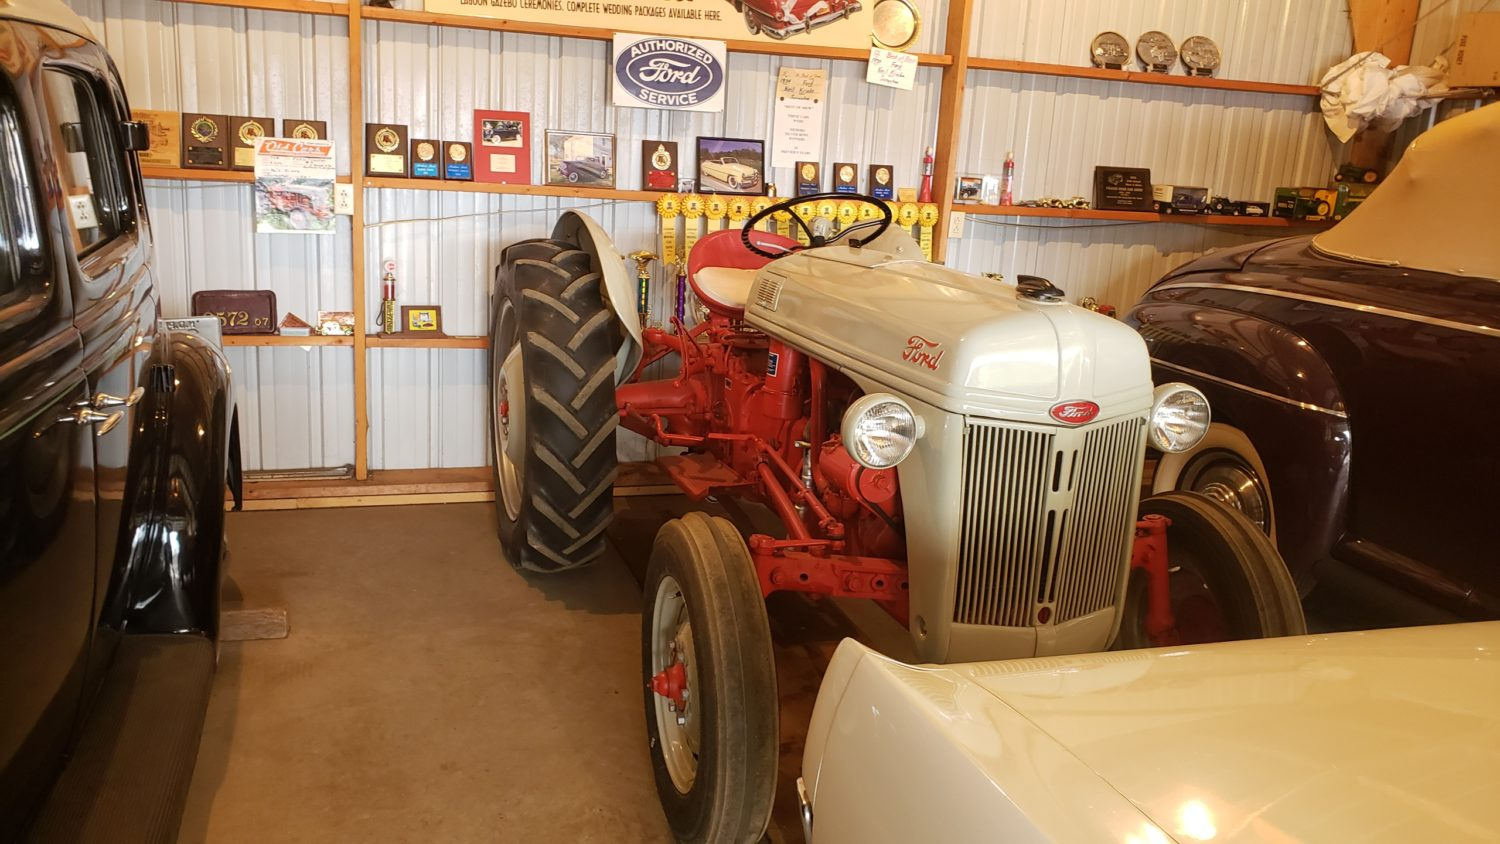 Fabulous Collector Cars, Antique Tractors, Memorabilia & More! The Krinke Collection - image 3